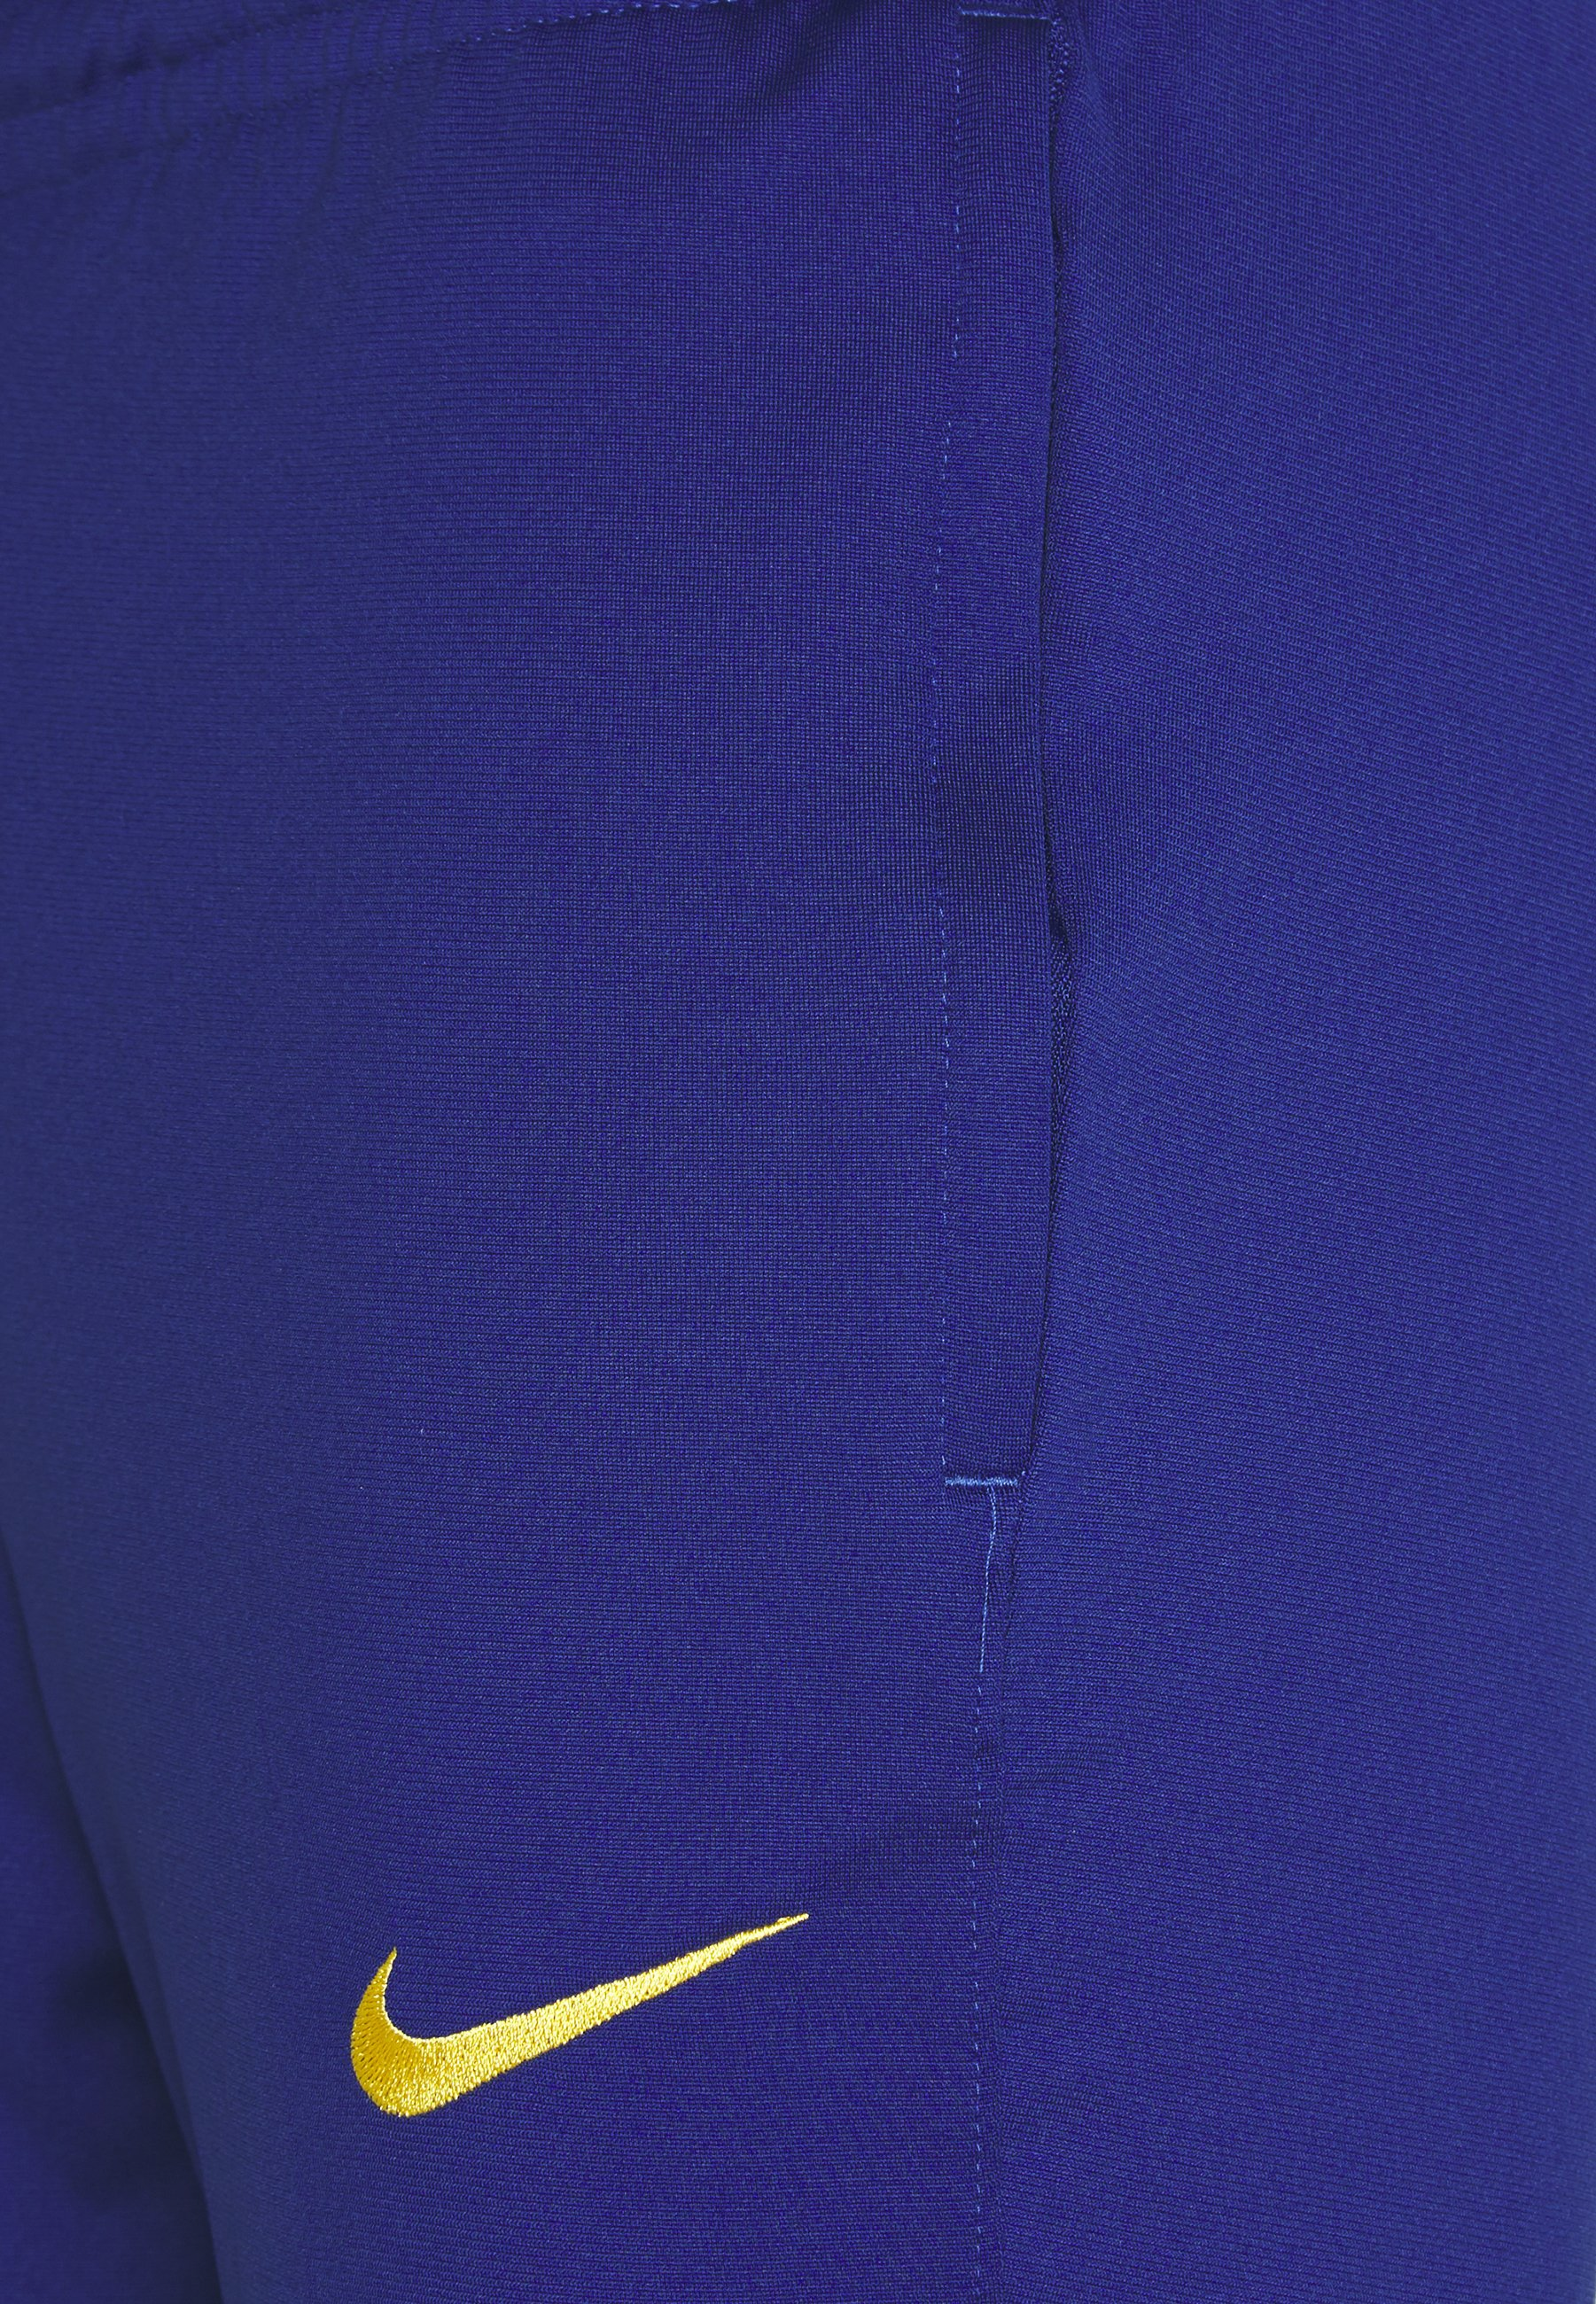 FC BARCELONA SUIT Fanartikel deep royal blueamarillo